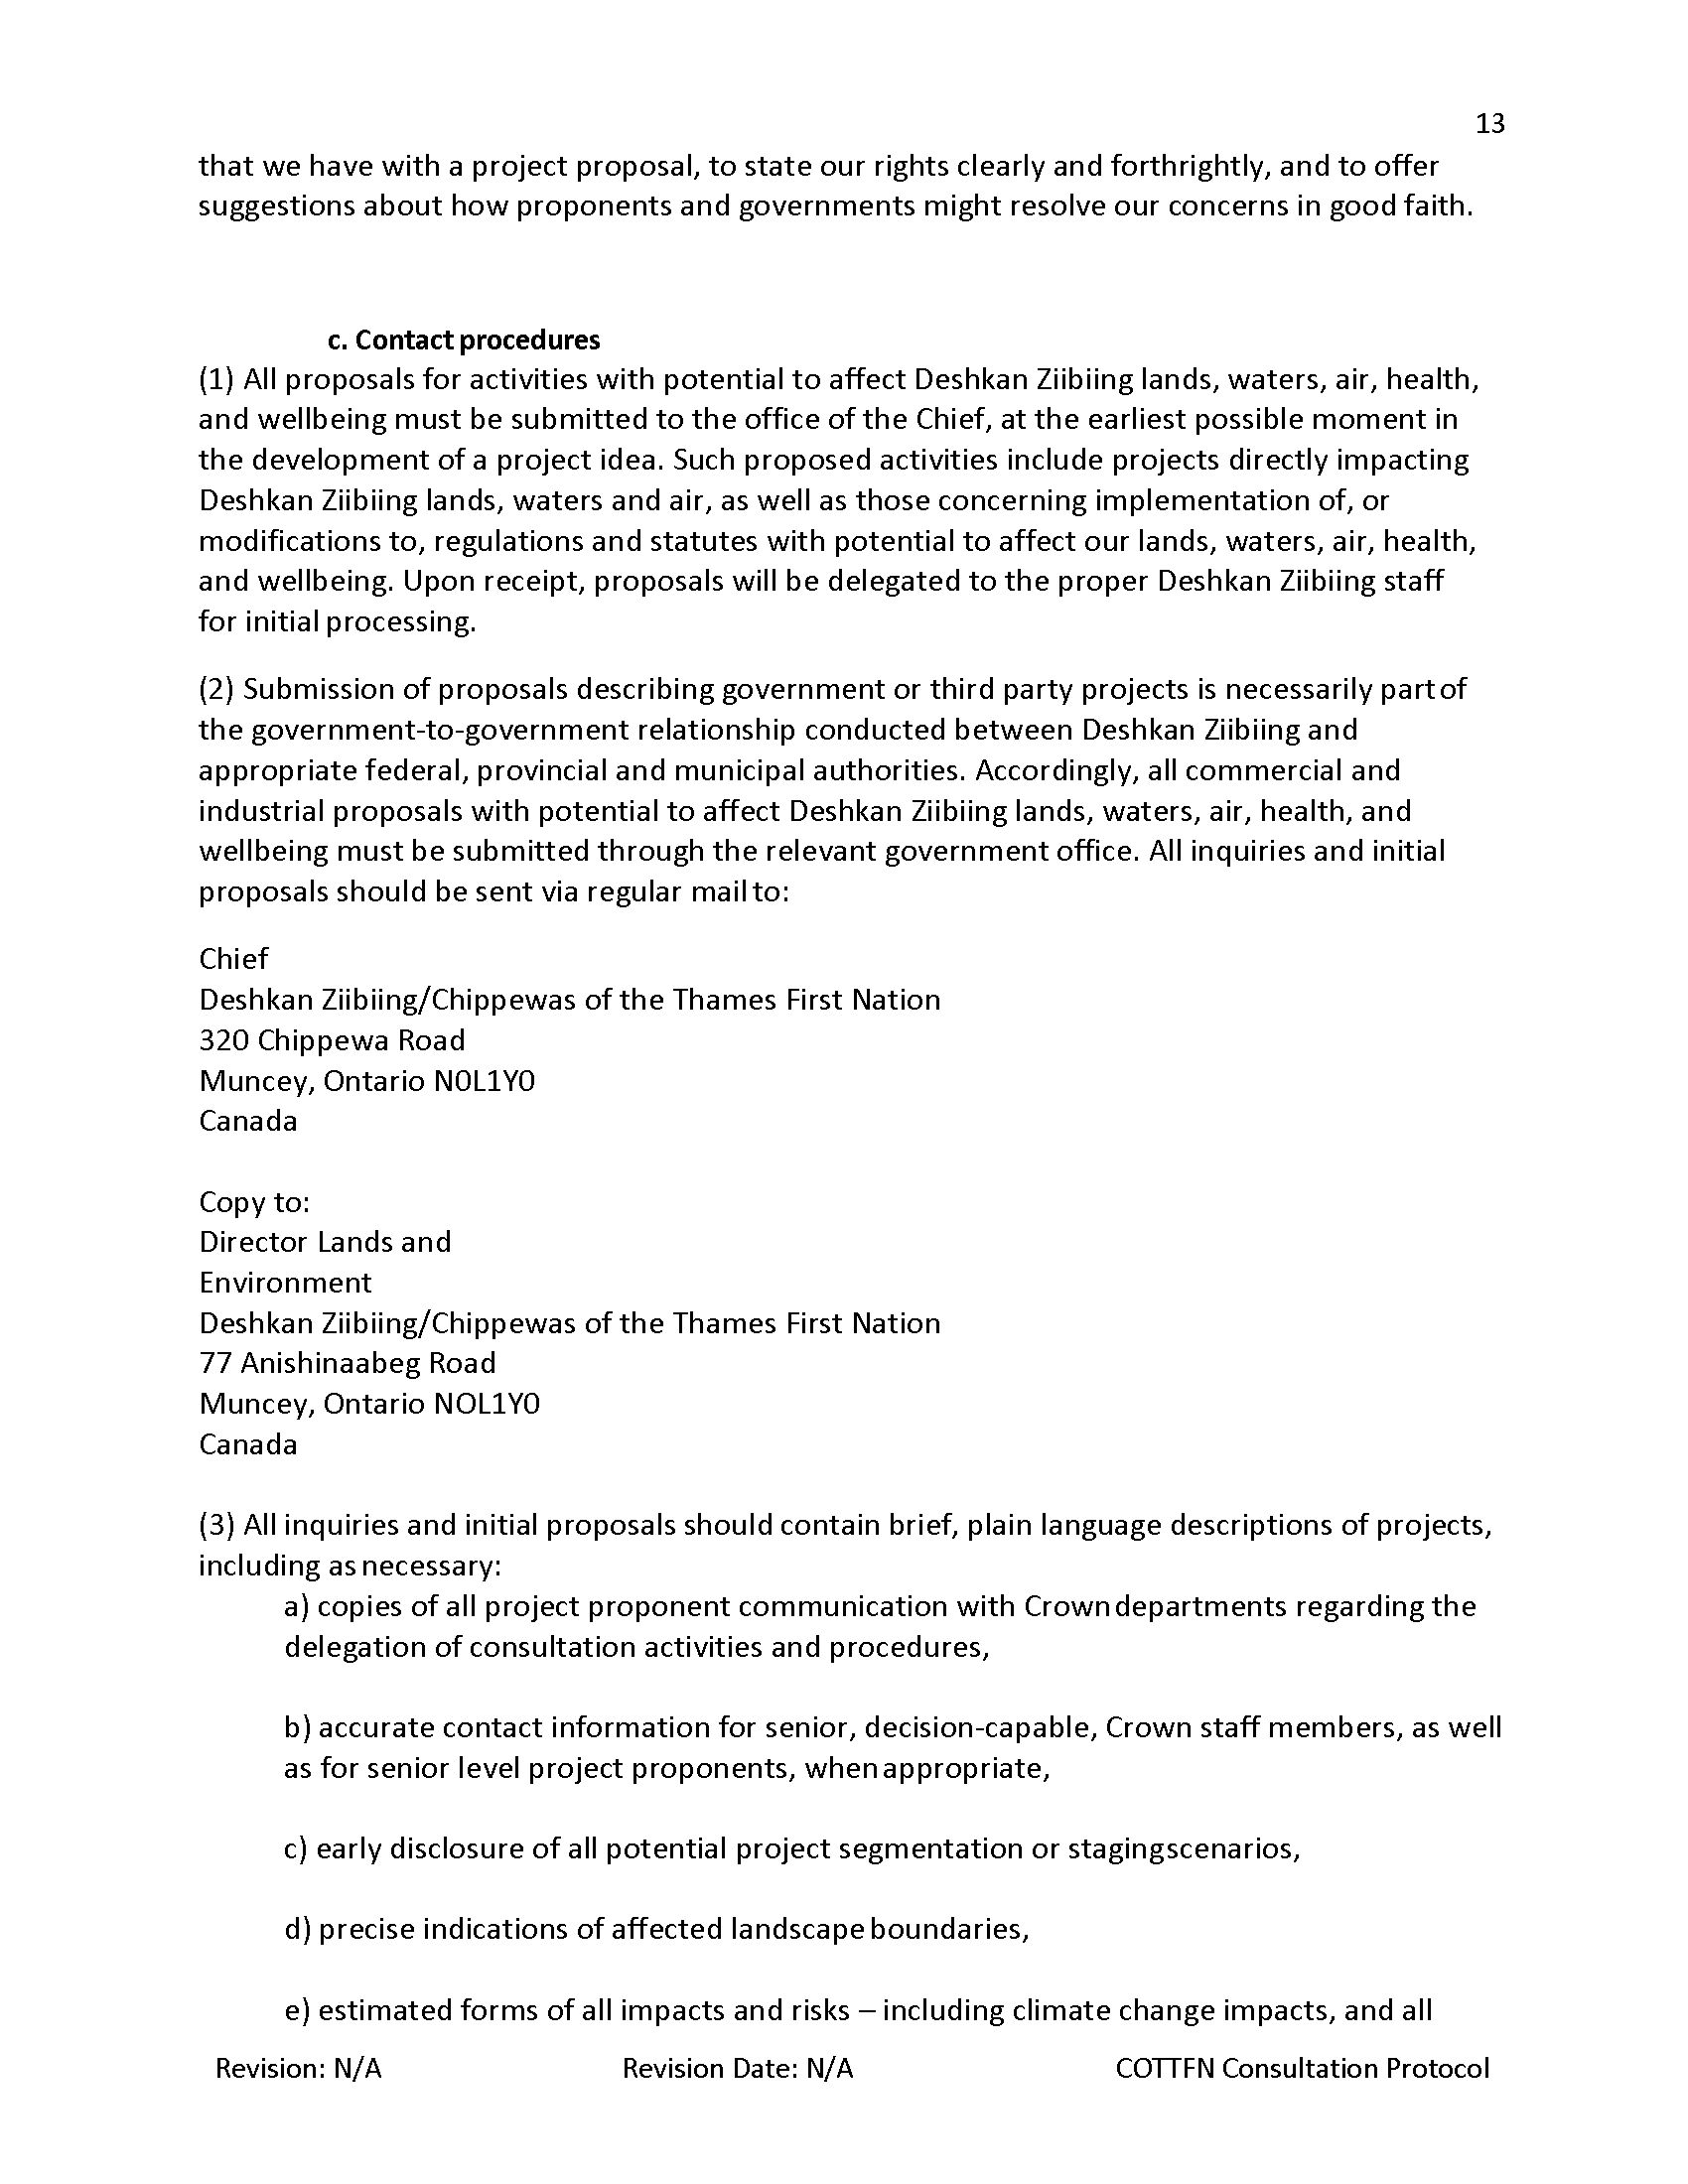 wiindmaagewin-consultation-protocol-03-17_page_13